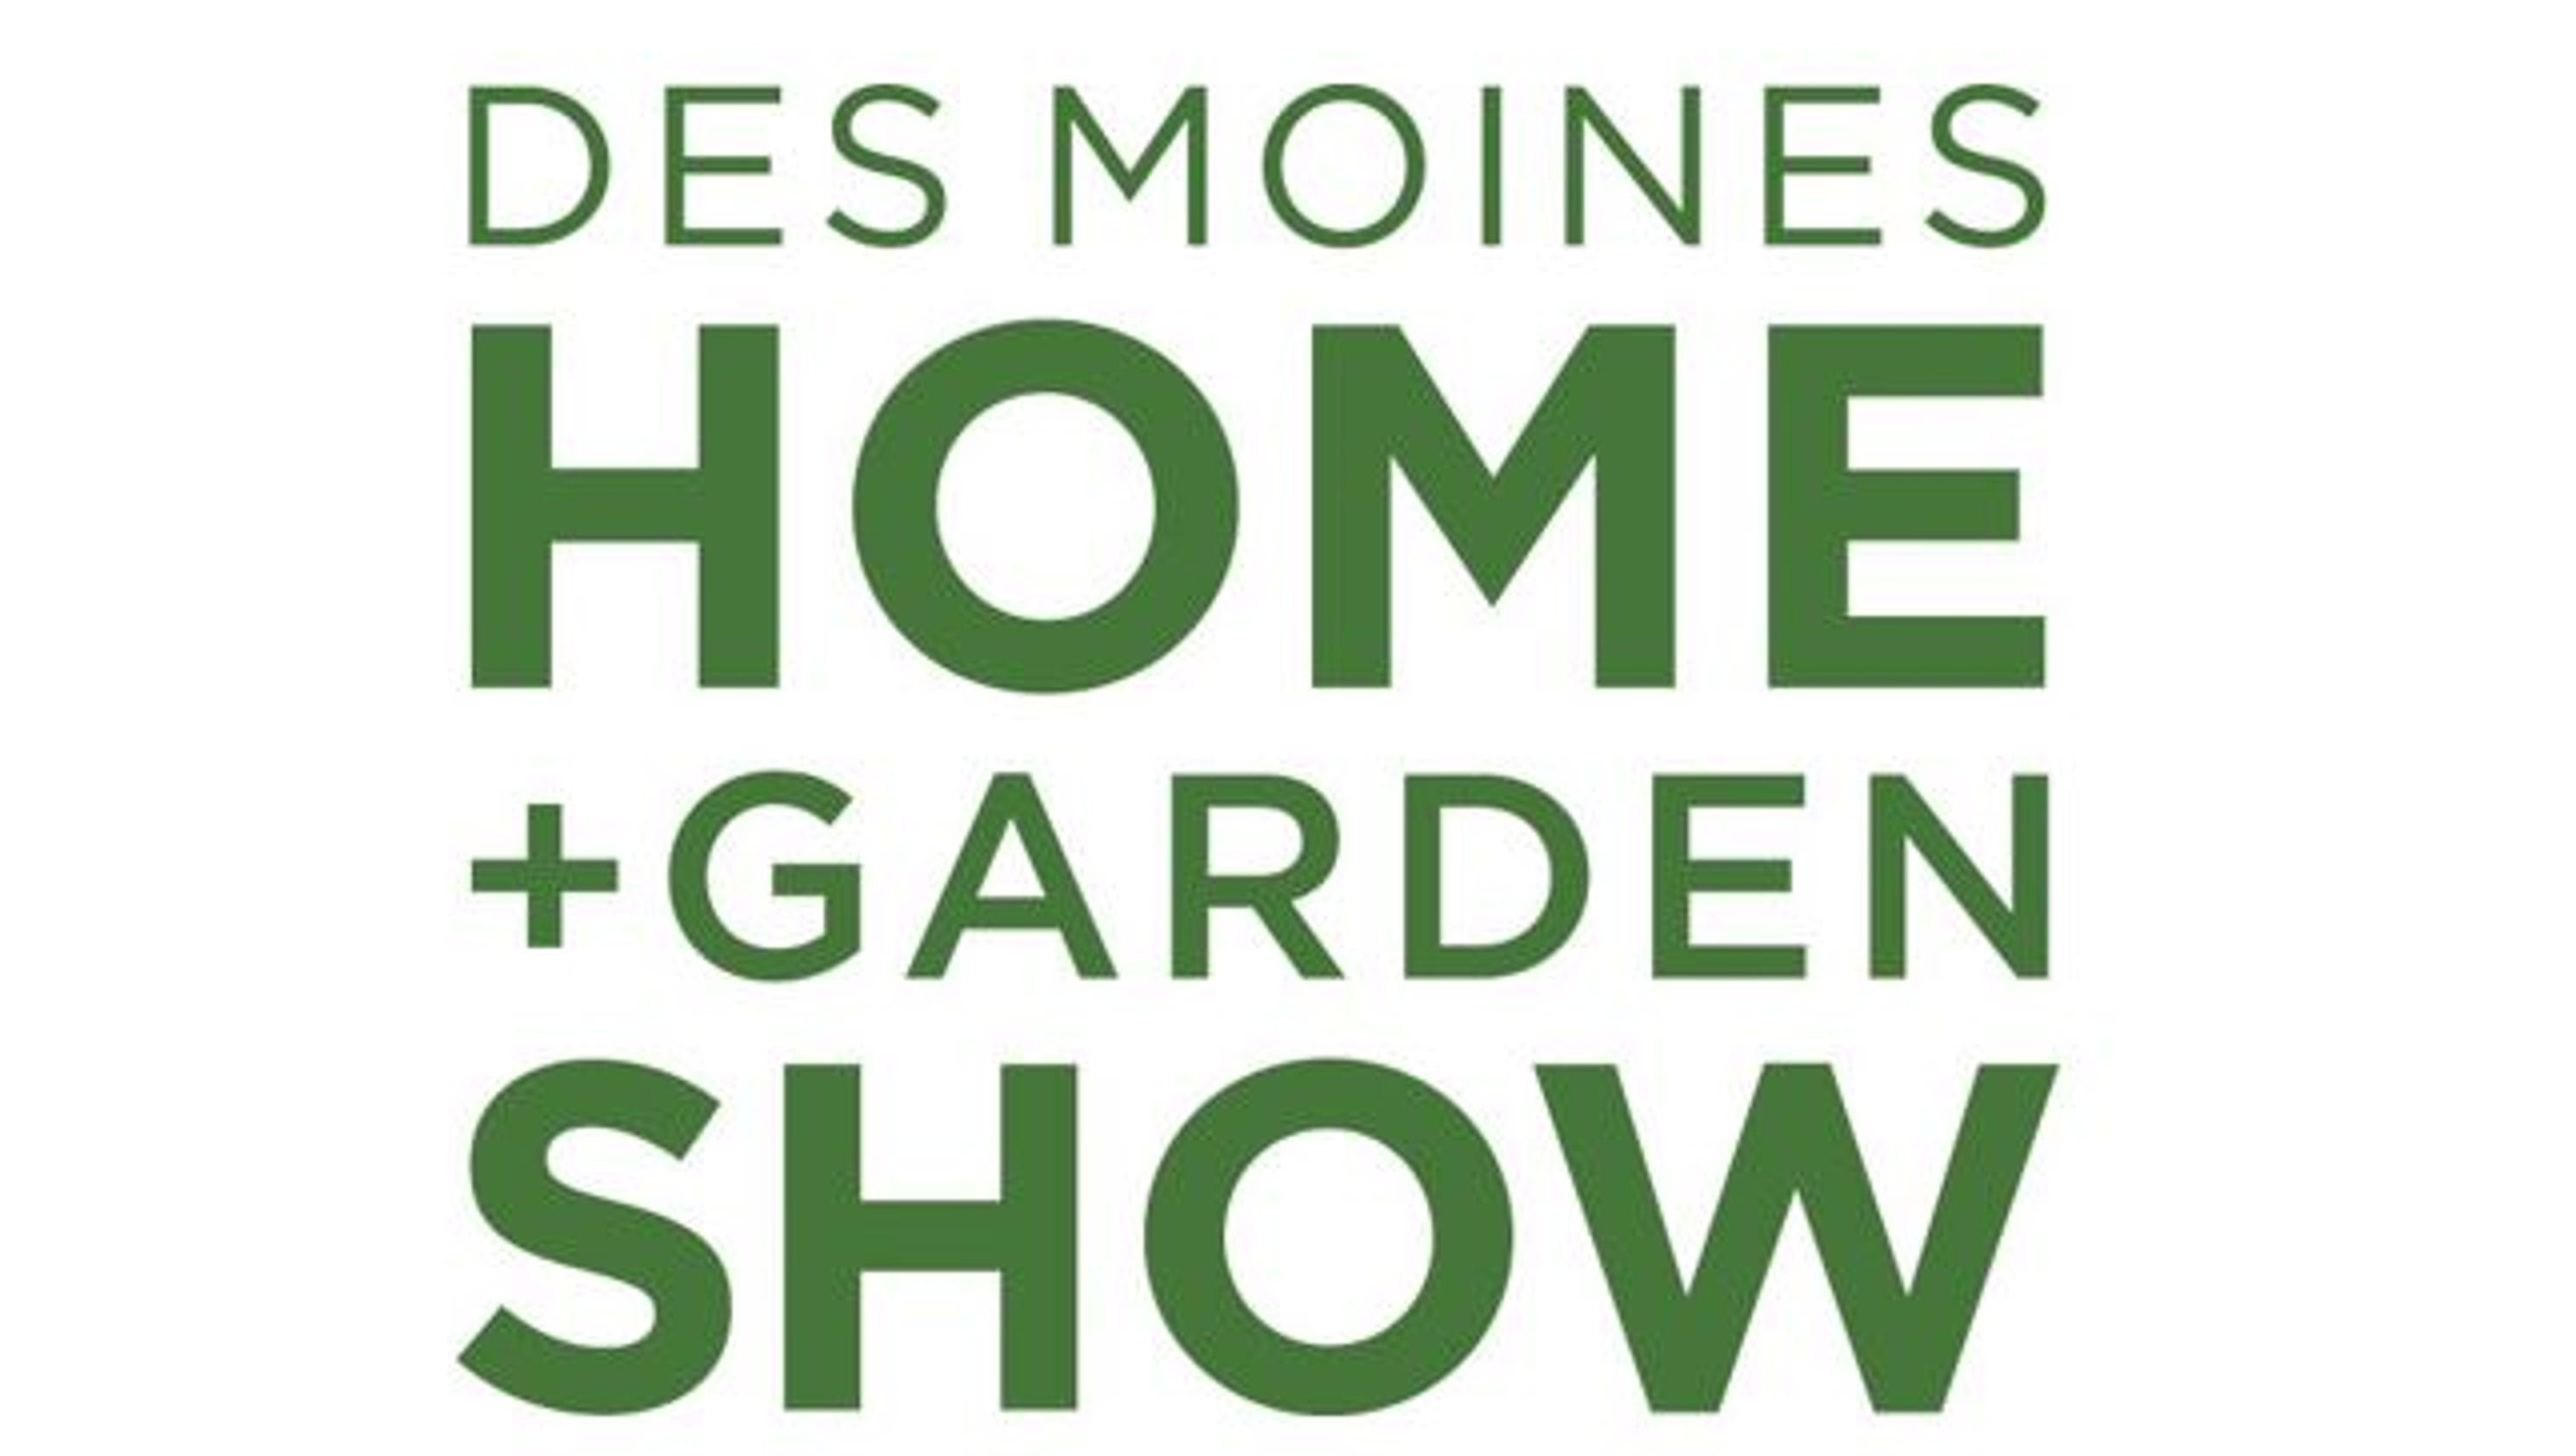 20 Lastest Home Safety At Des Moines